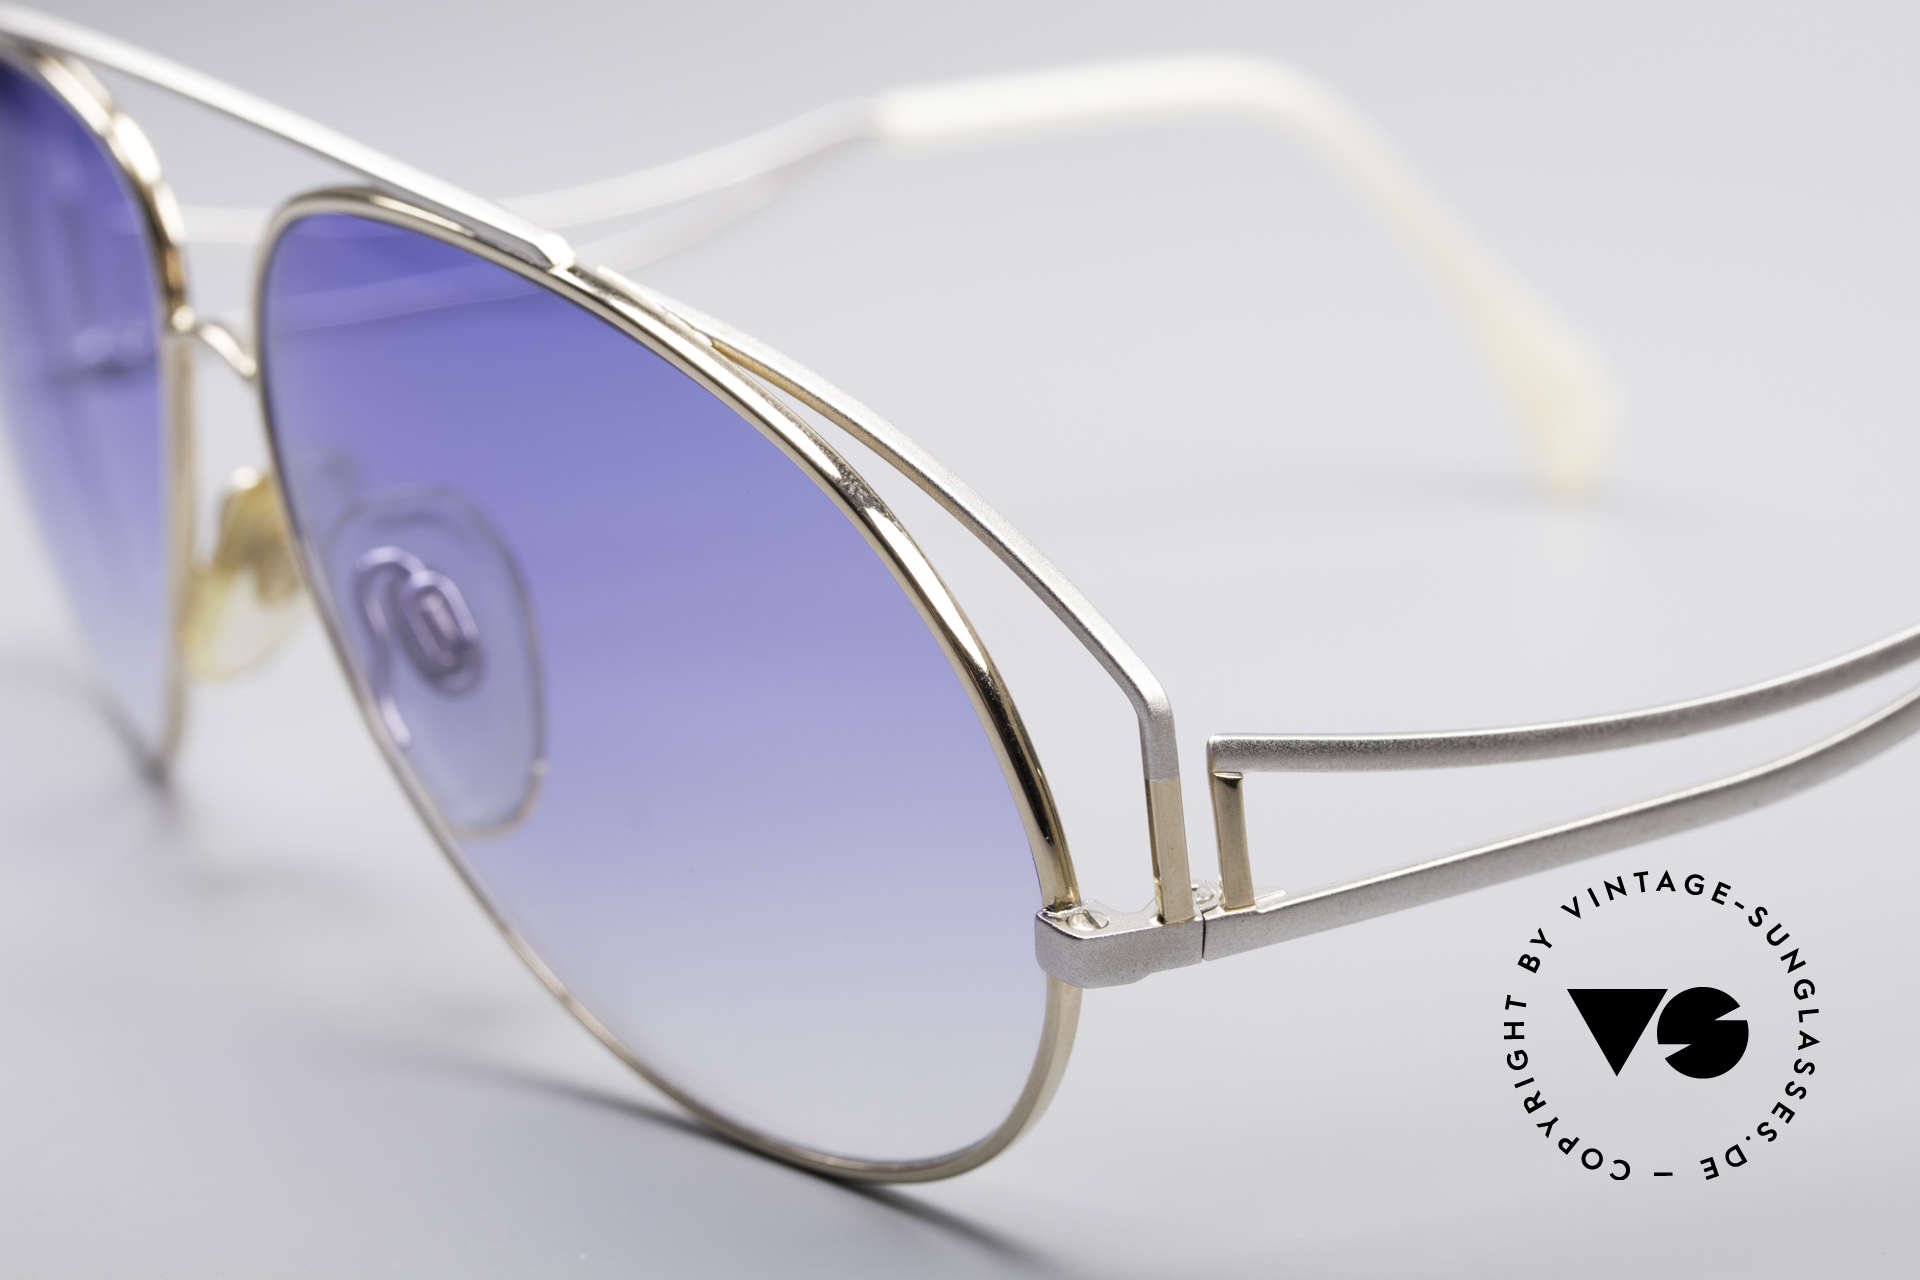 Zollitsch Radiant Industrial Frame Design, true eye-catcher in top-quality (made in Germany), Made for Men